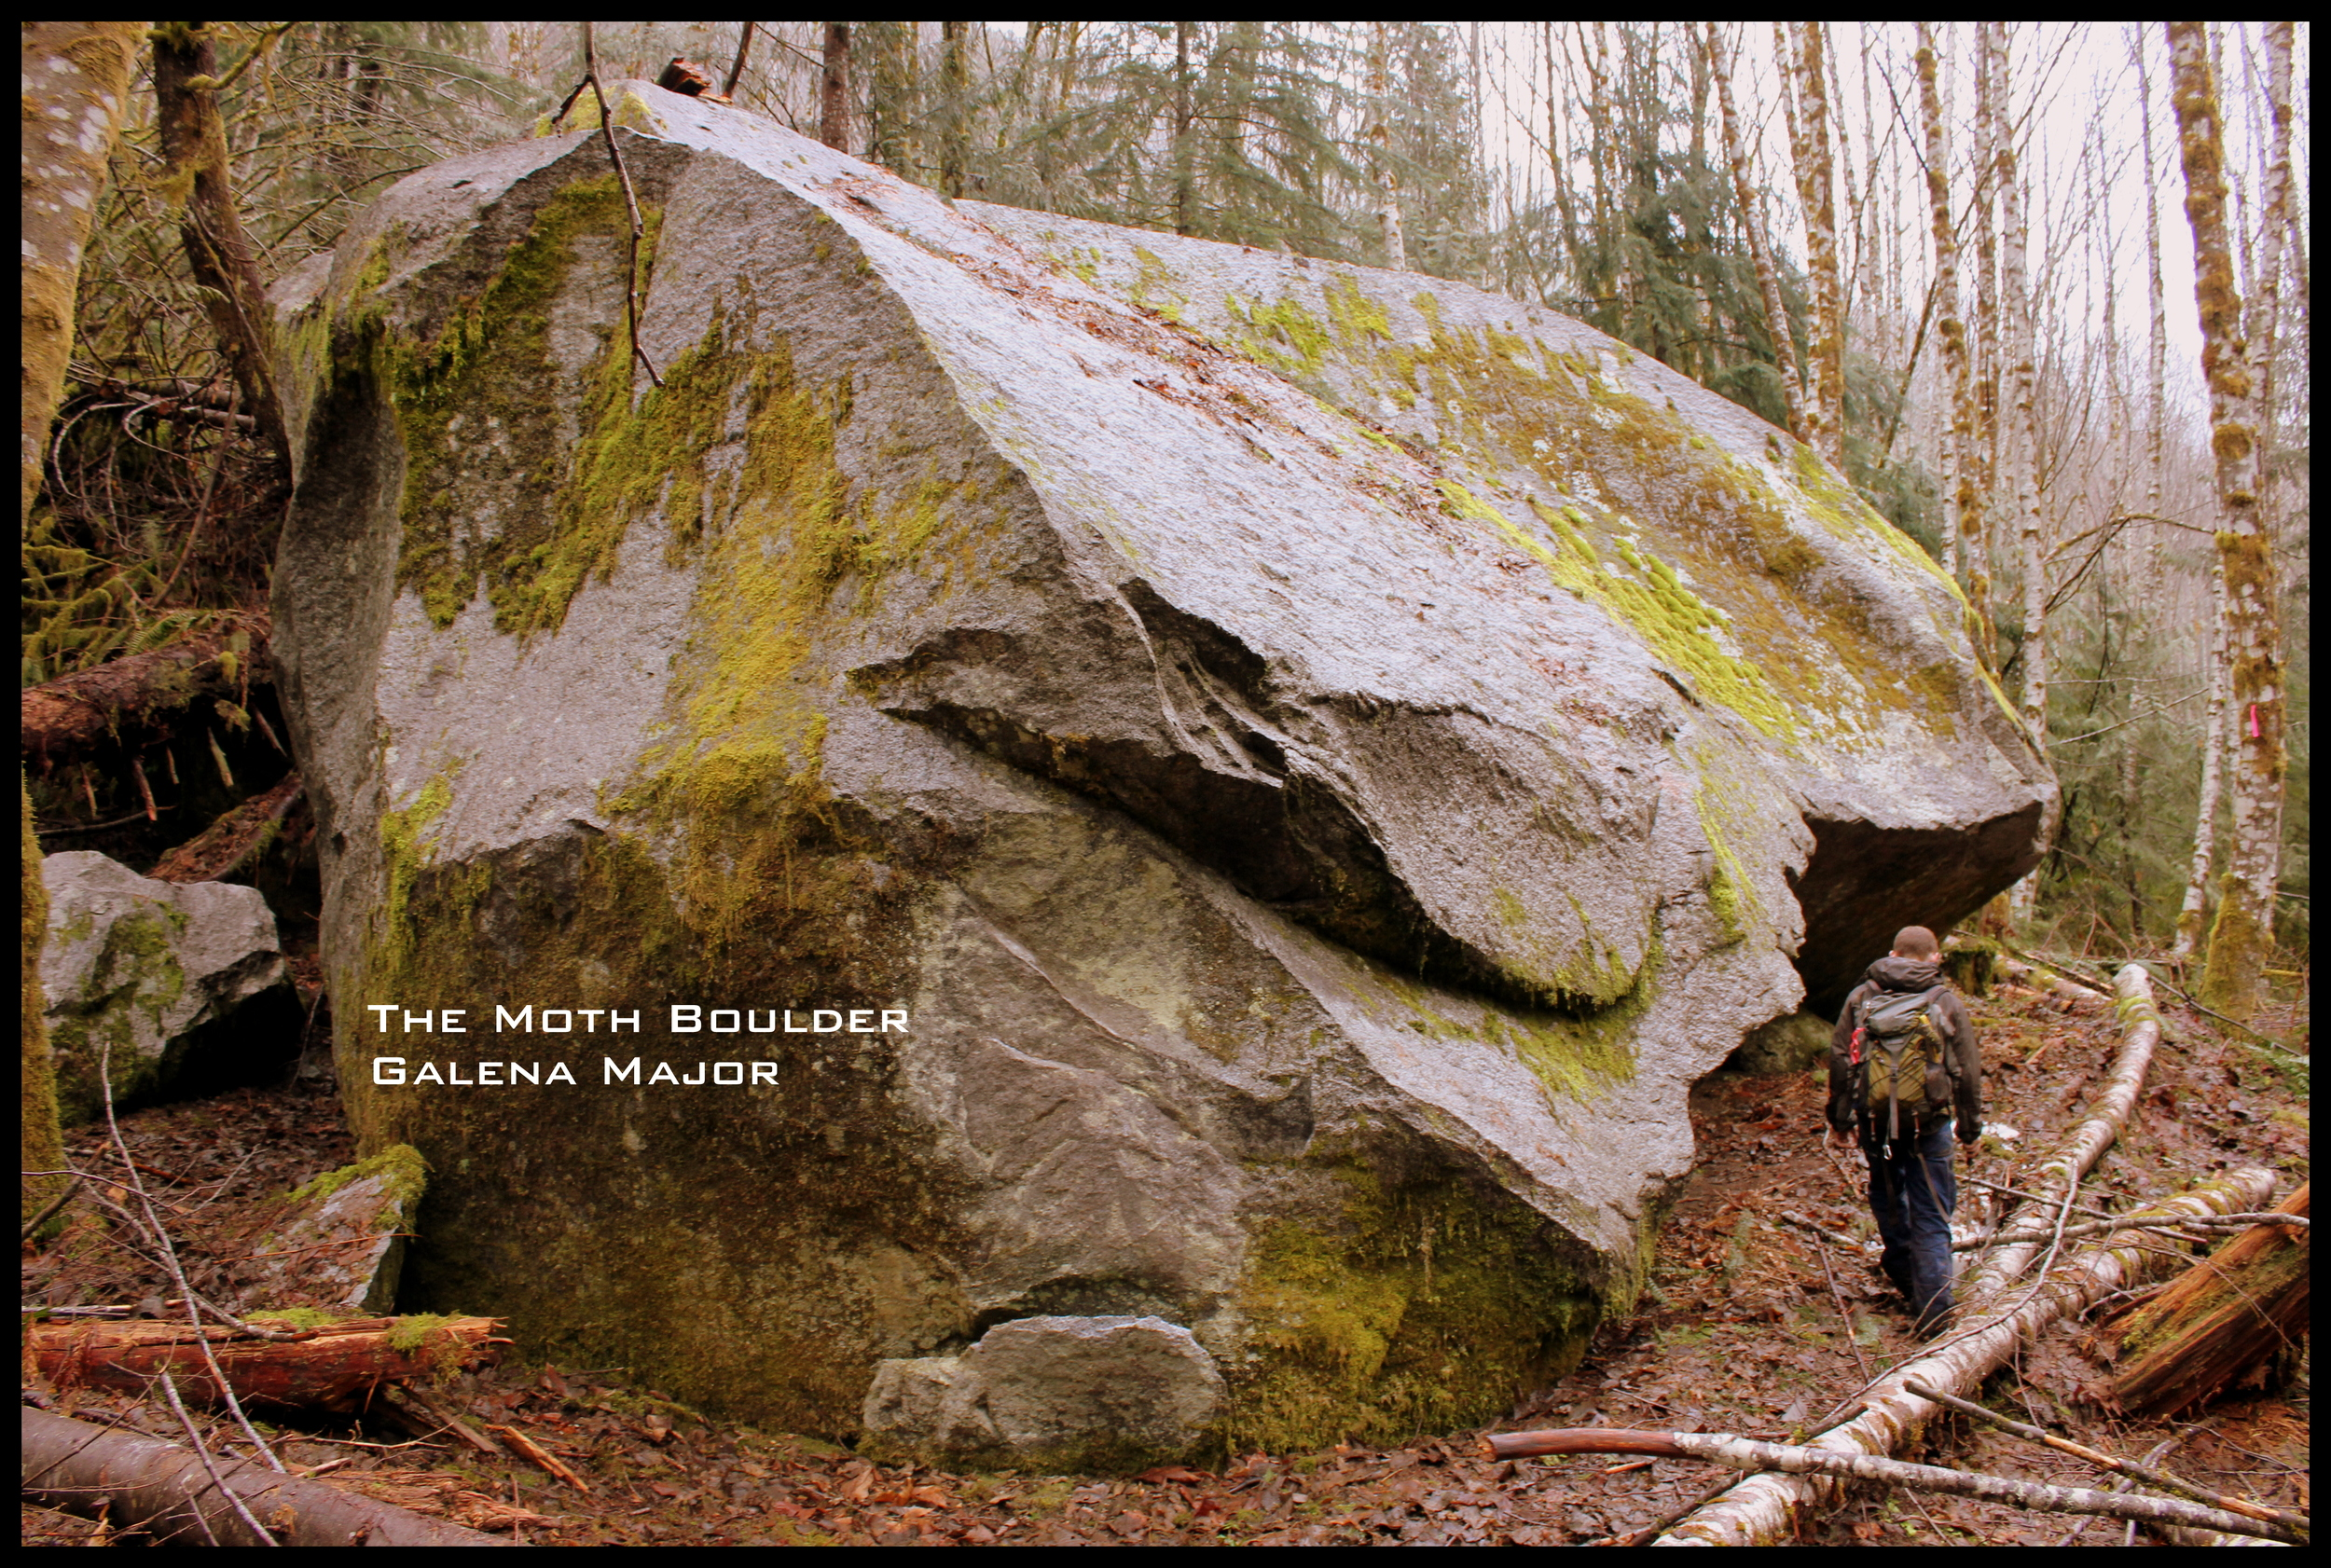 Jesse Evans expouldering near The Moth Boulder. This has some sweet lines on it !